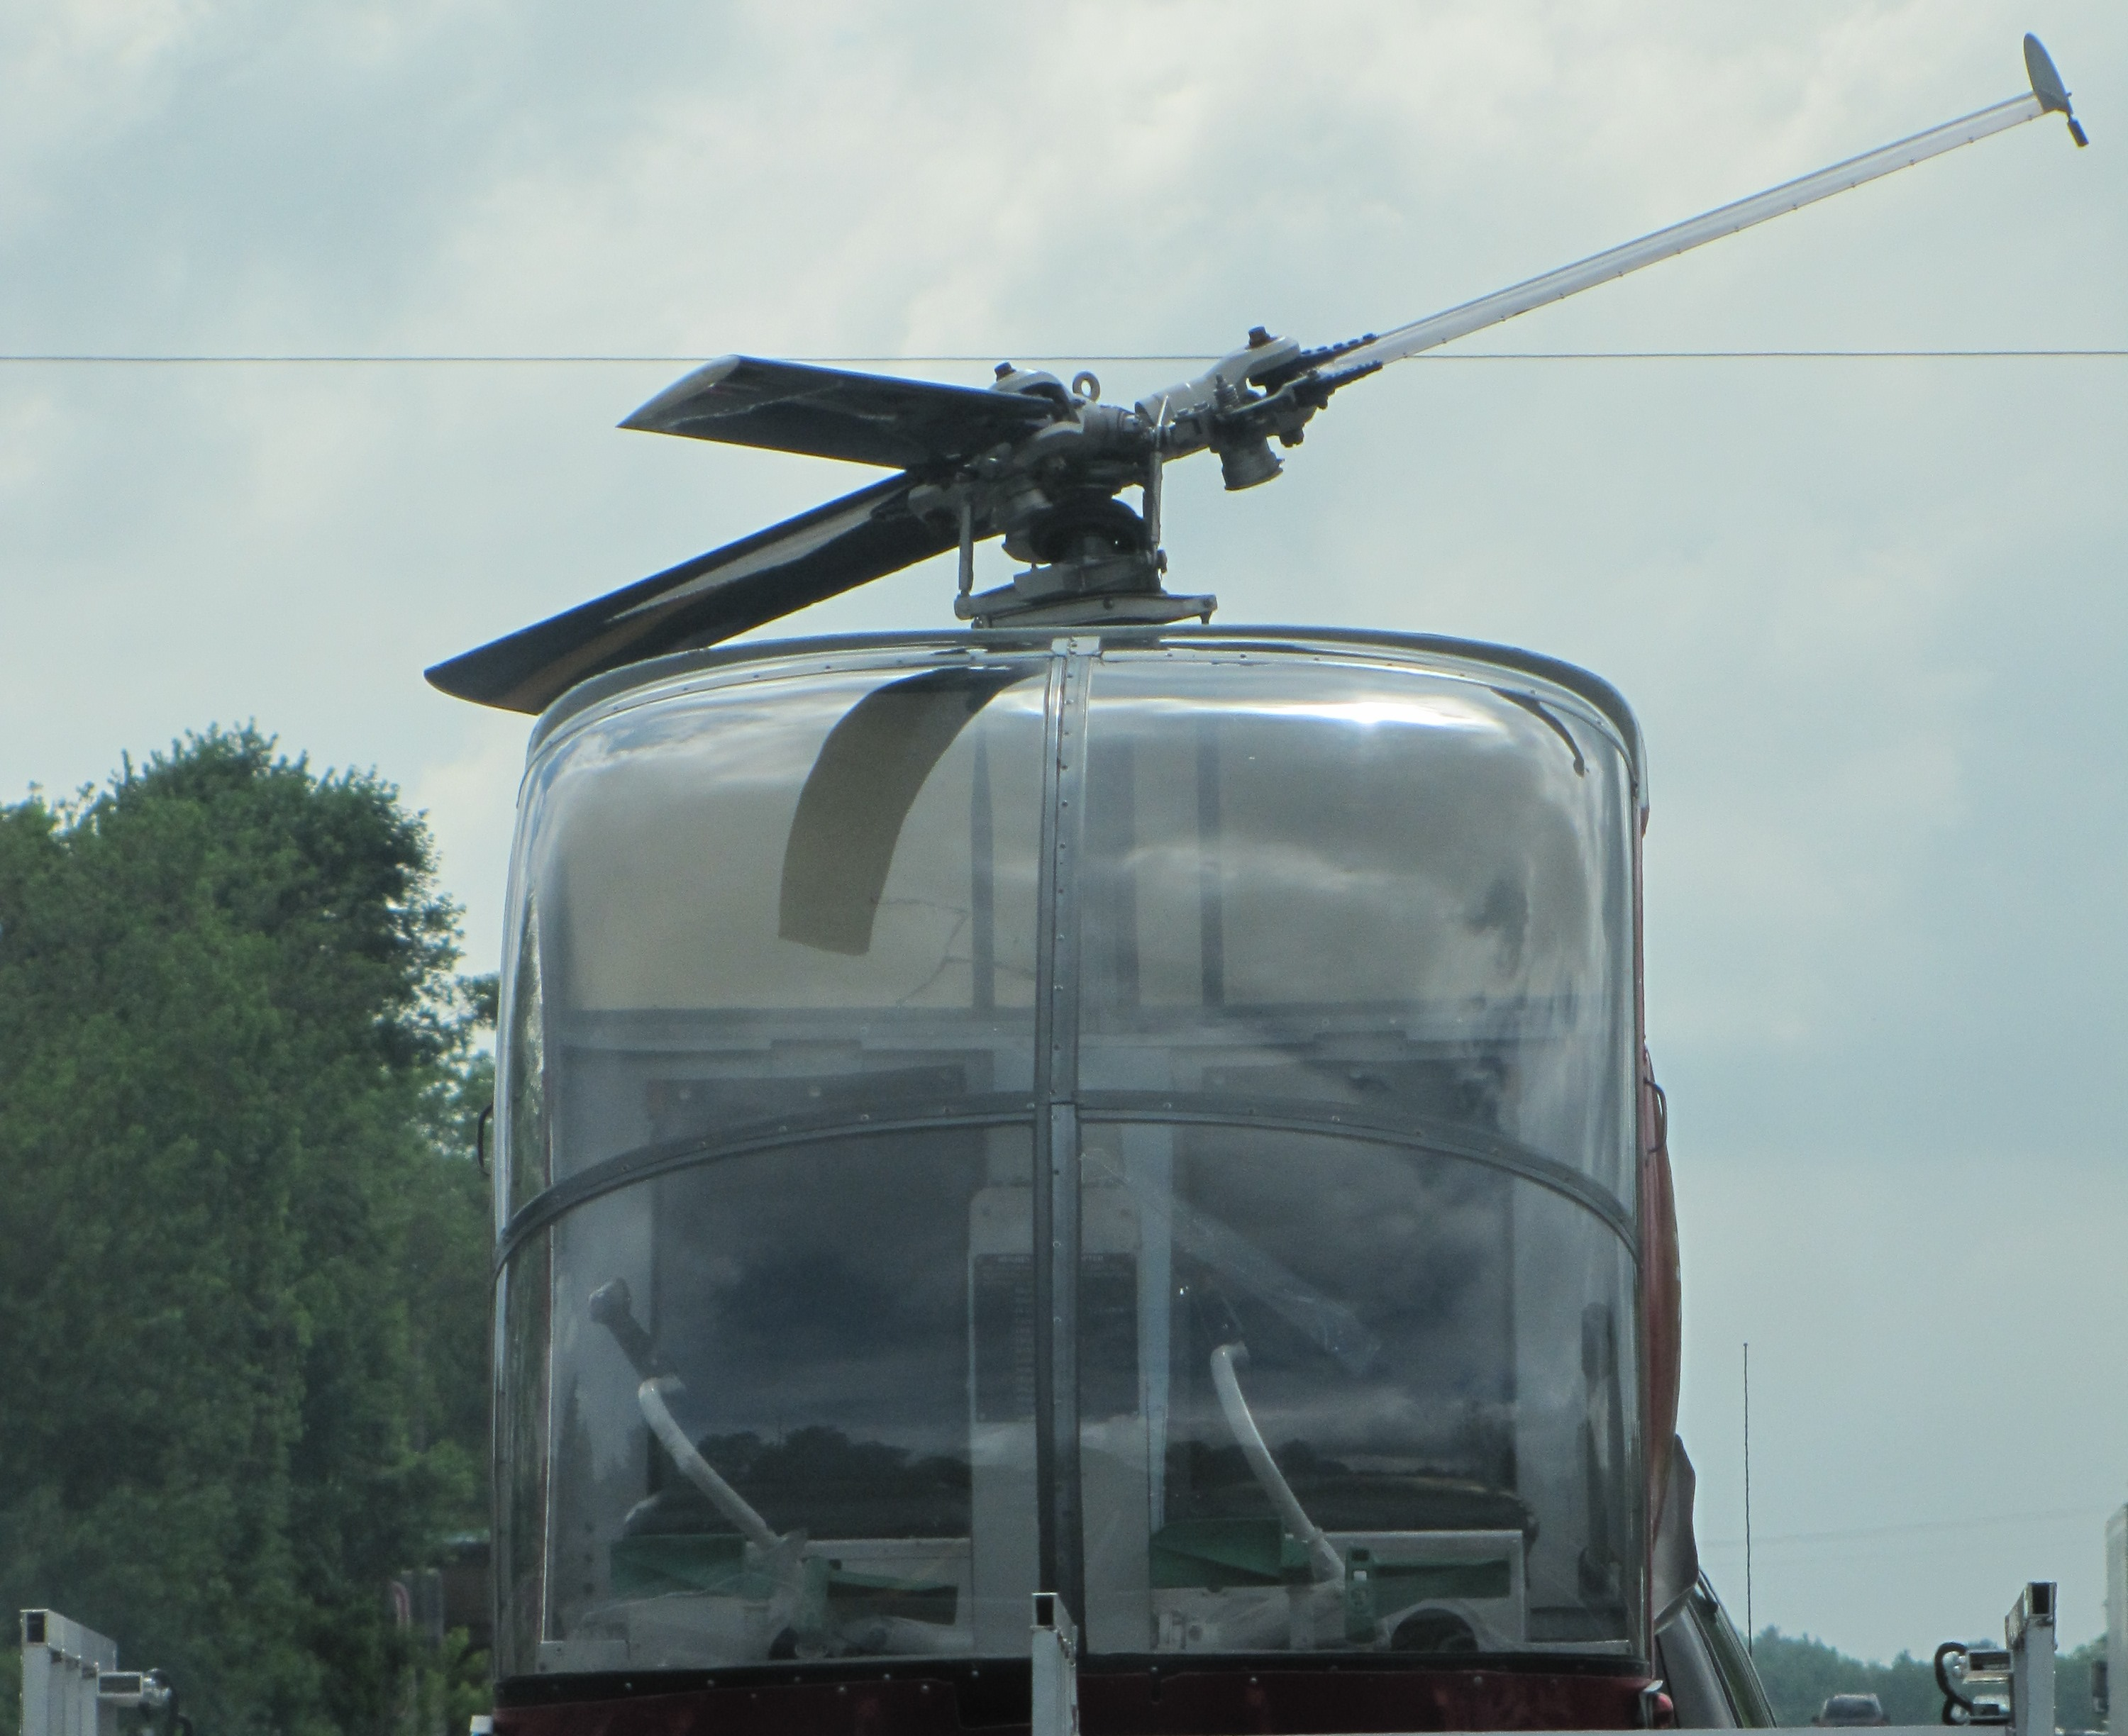 an empty helicopter cockpit as viewed from in front